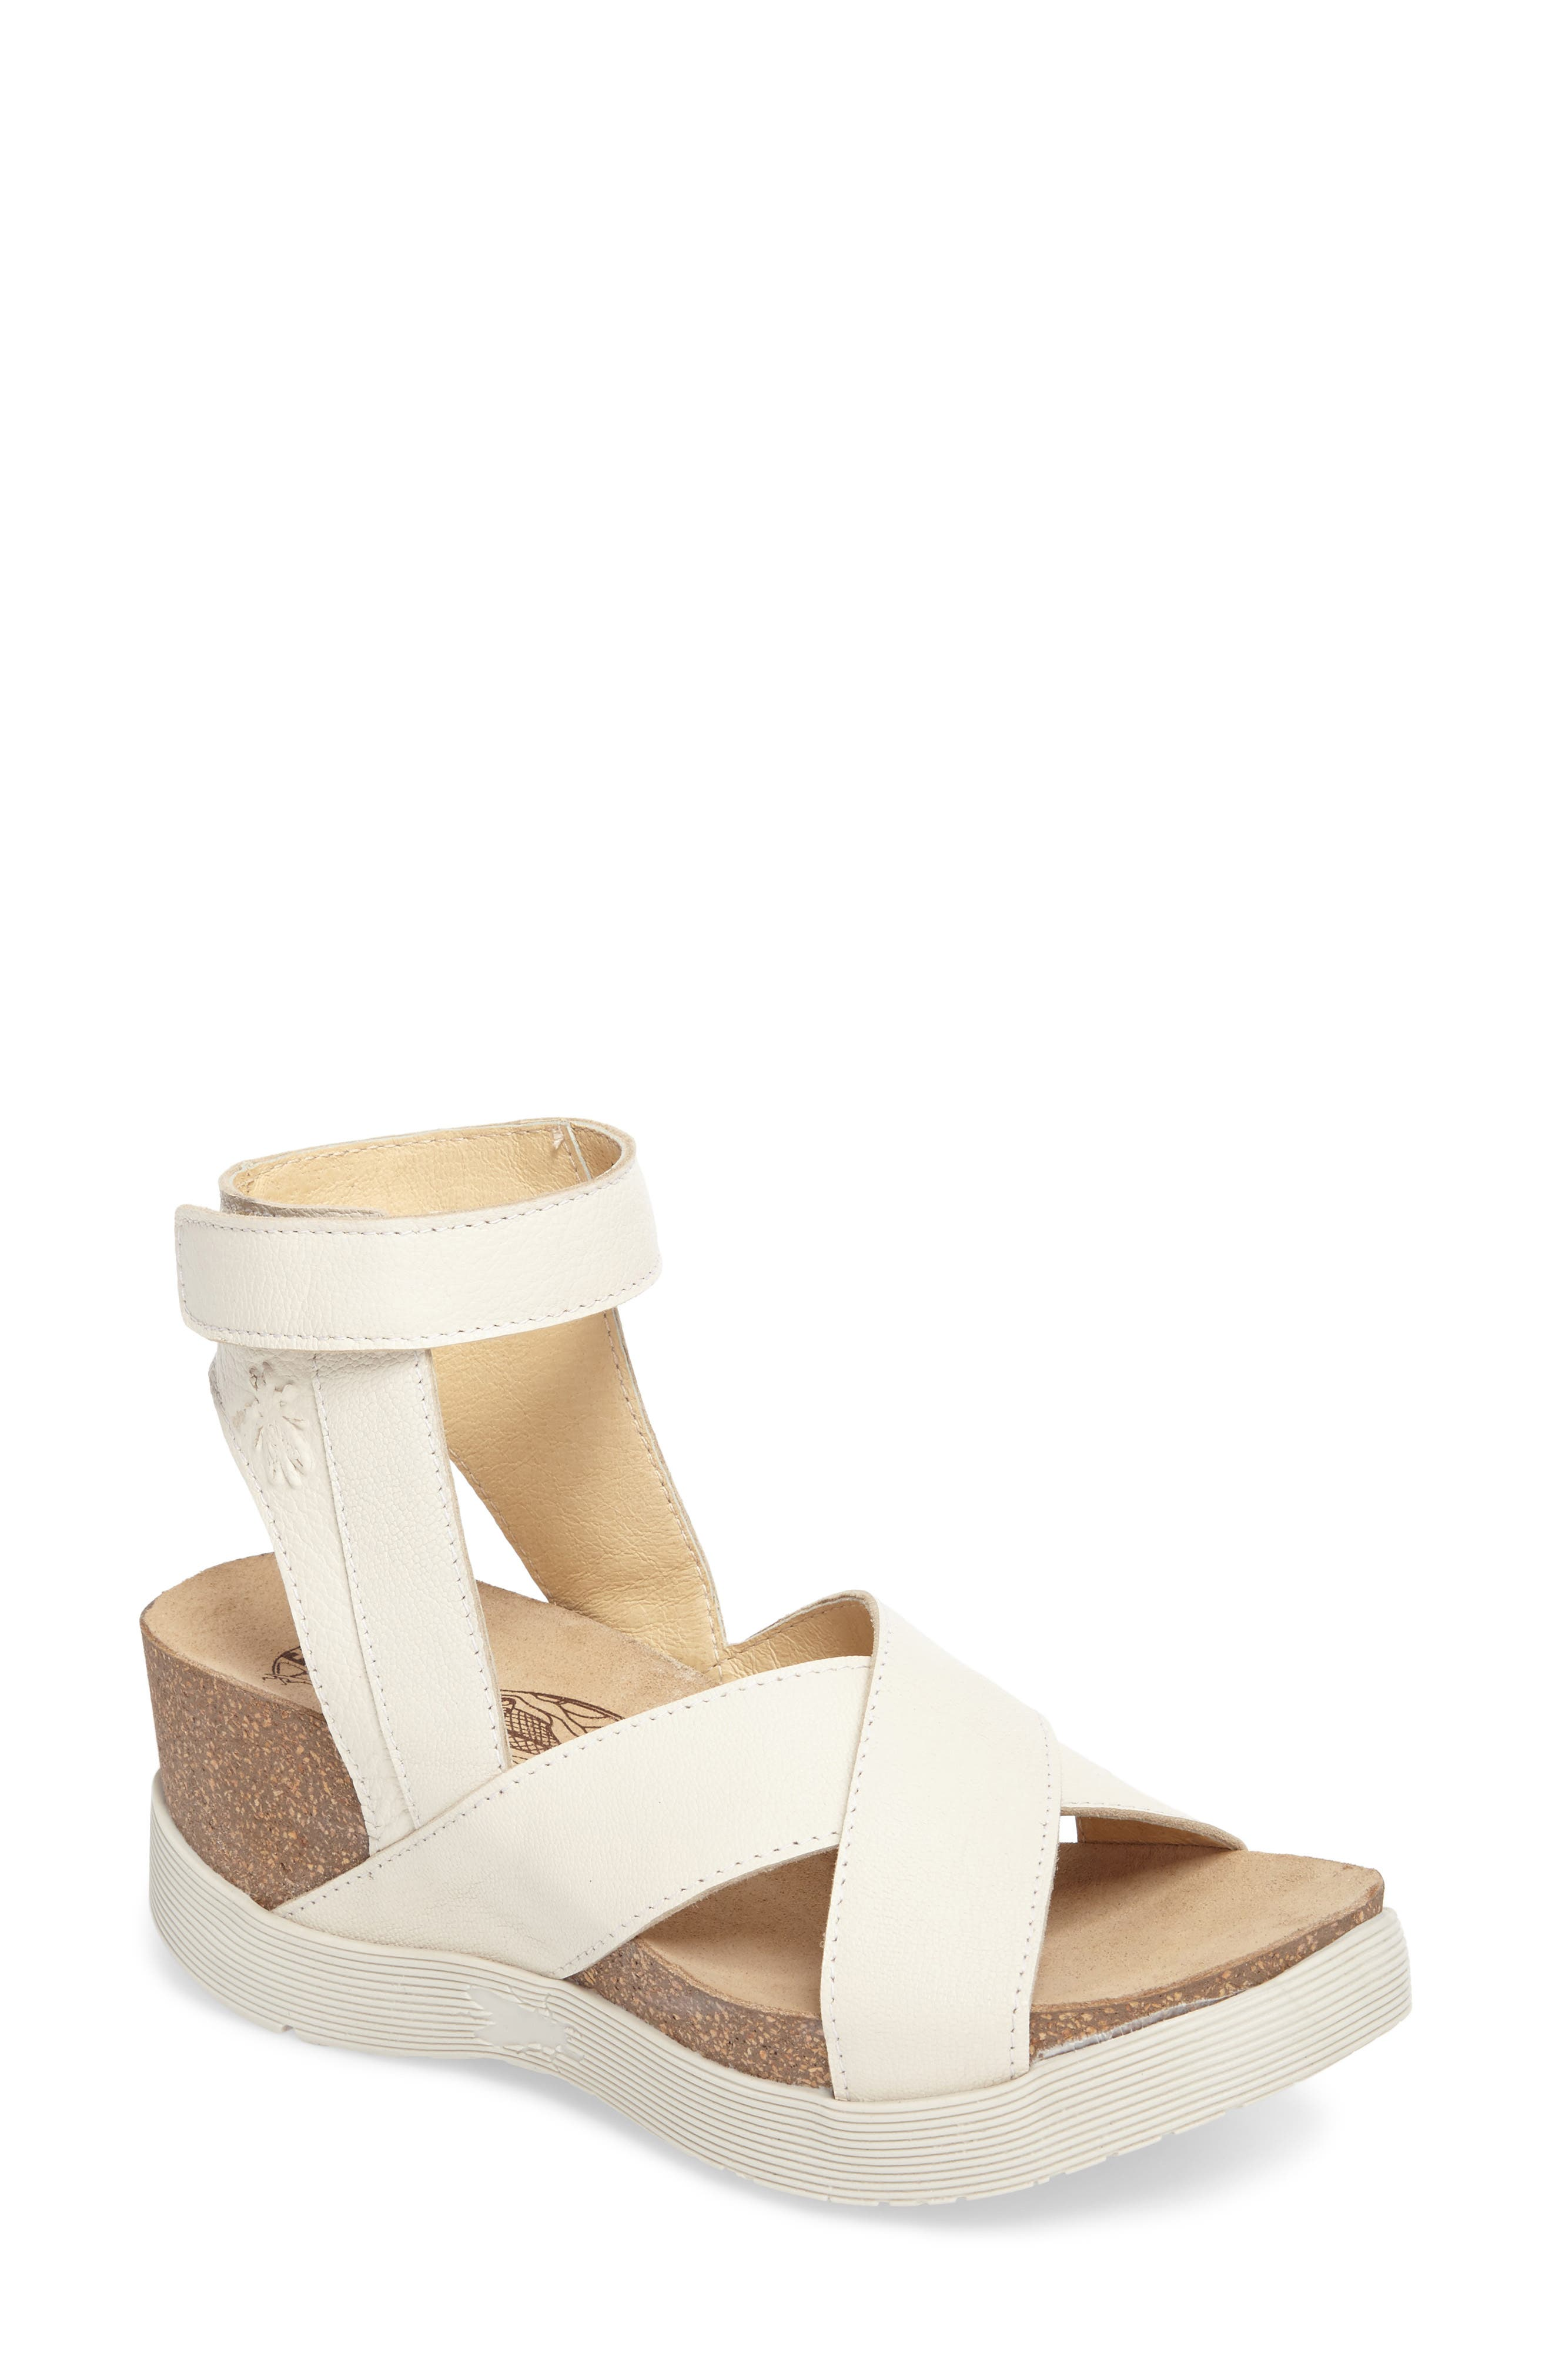 Fly London Weel Nubuck Leather Platform Sandal (Women)